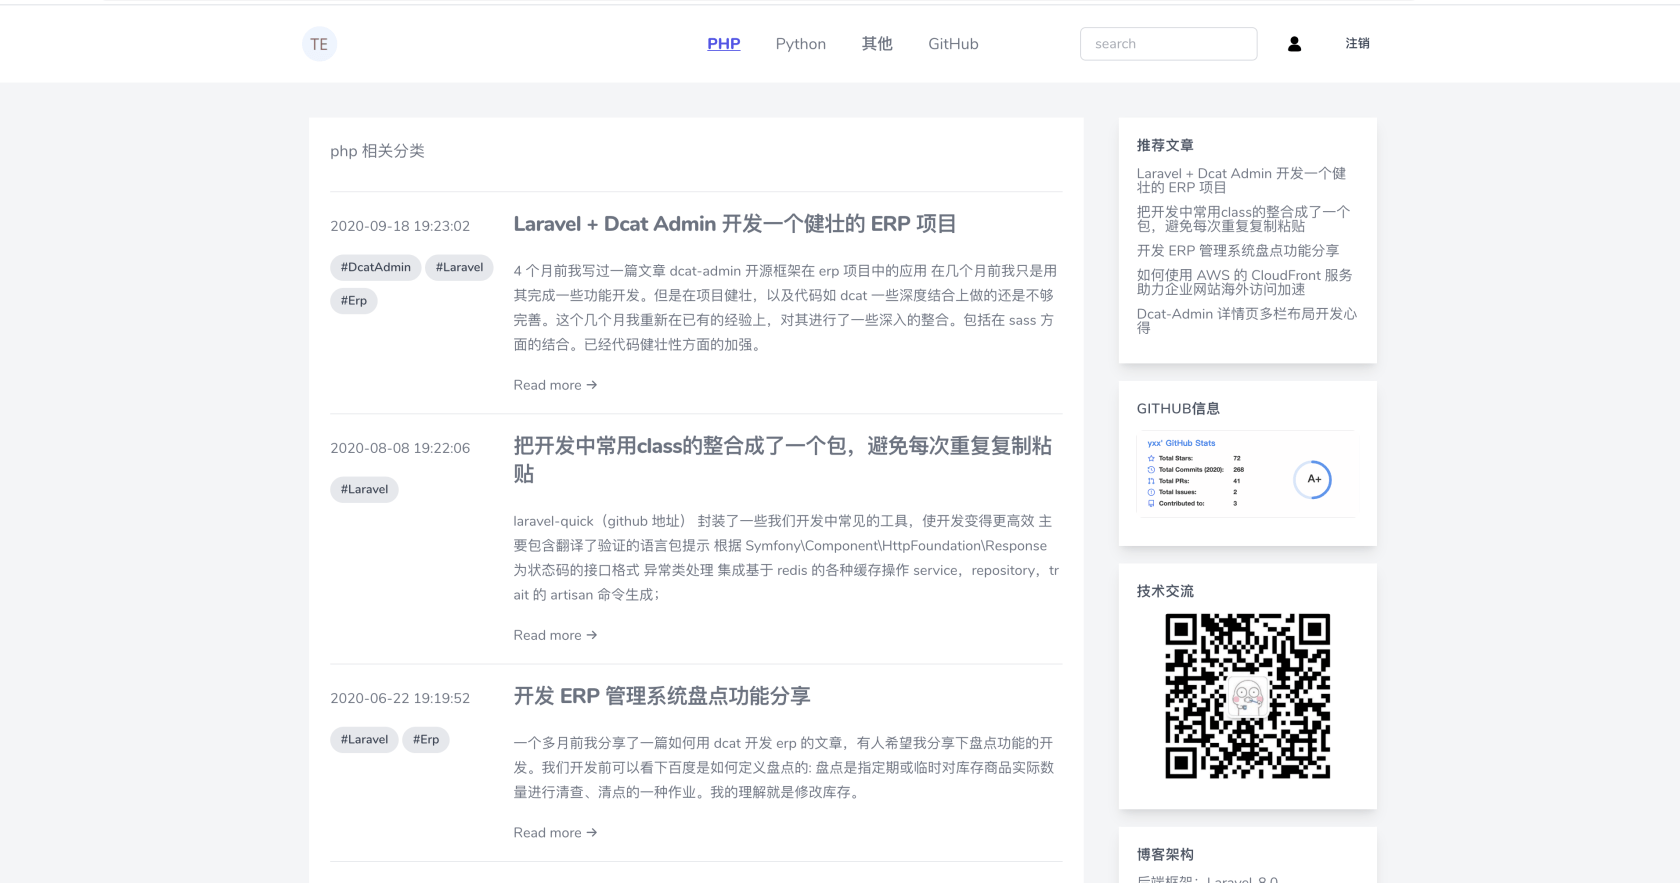 Livewire-Blog  (用 Laravel 8 + Jetstream 构建的一个开源博客)